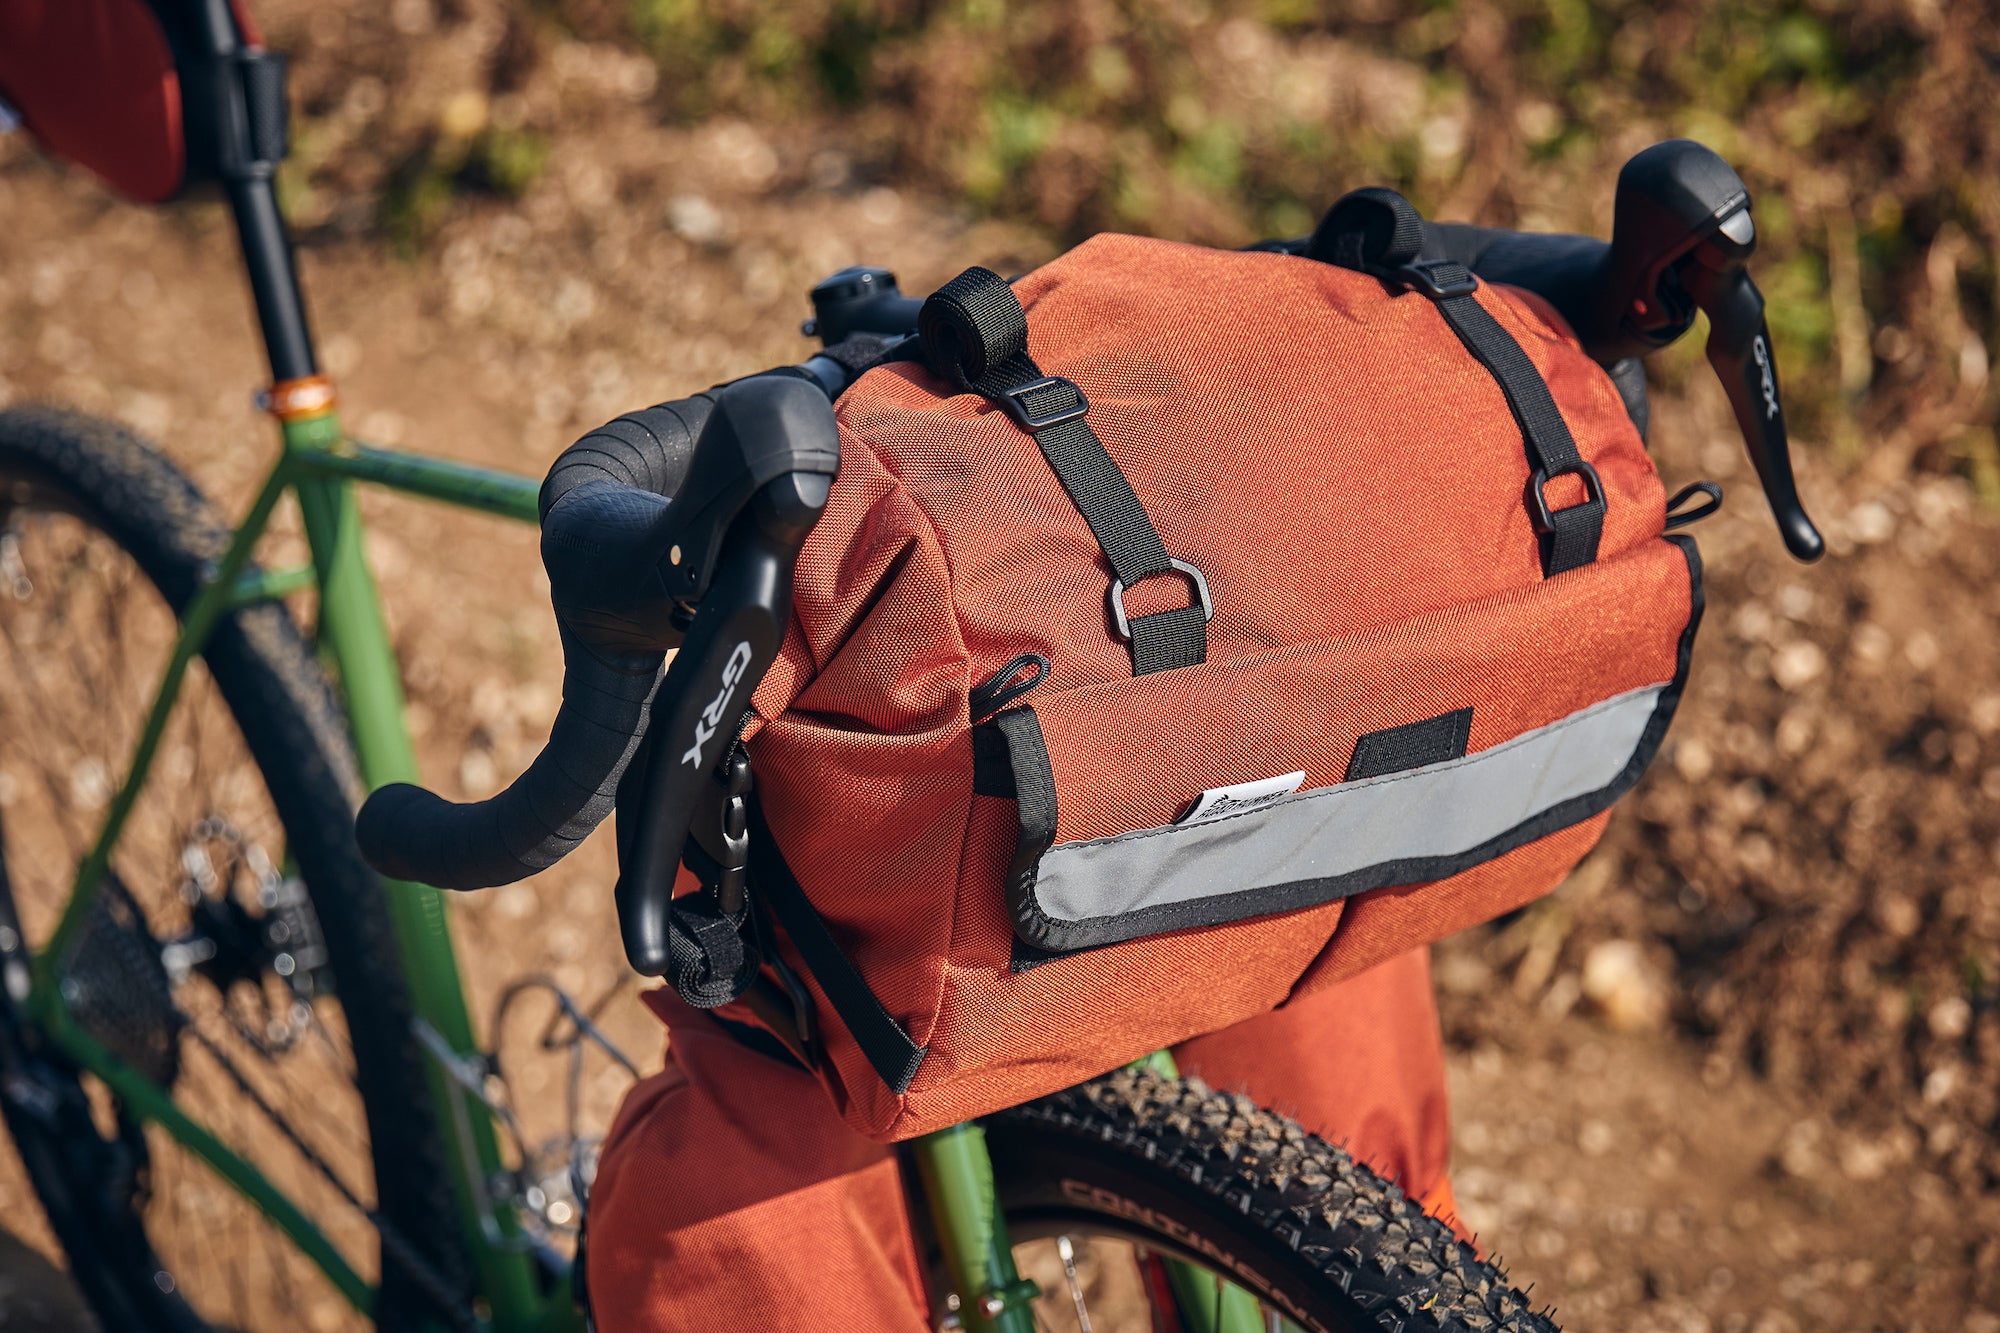 Fairlight LS1 with Road Runner Bikepacking Bags preview of the Middle Earth Jammer